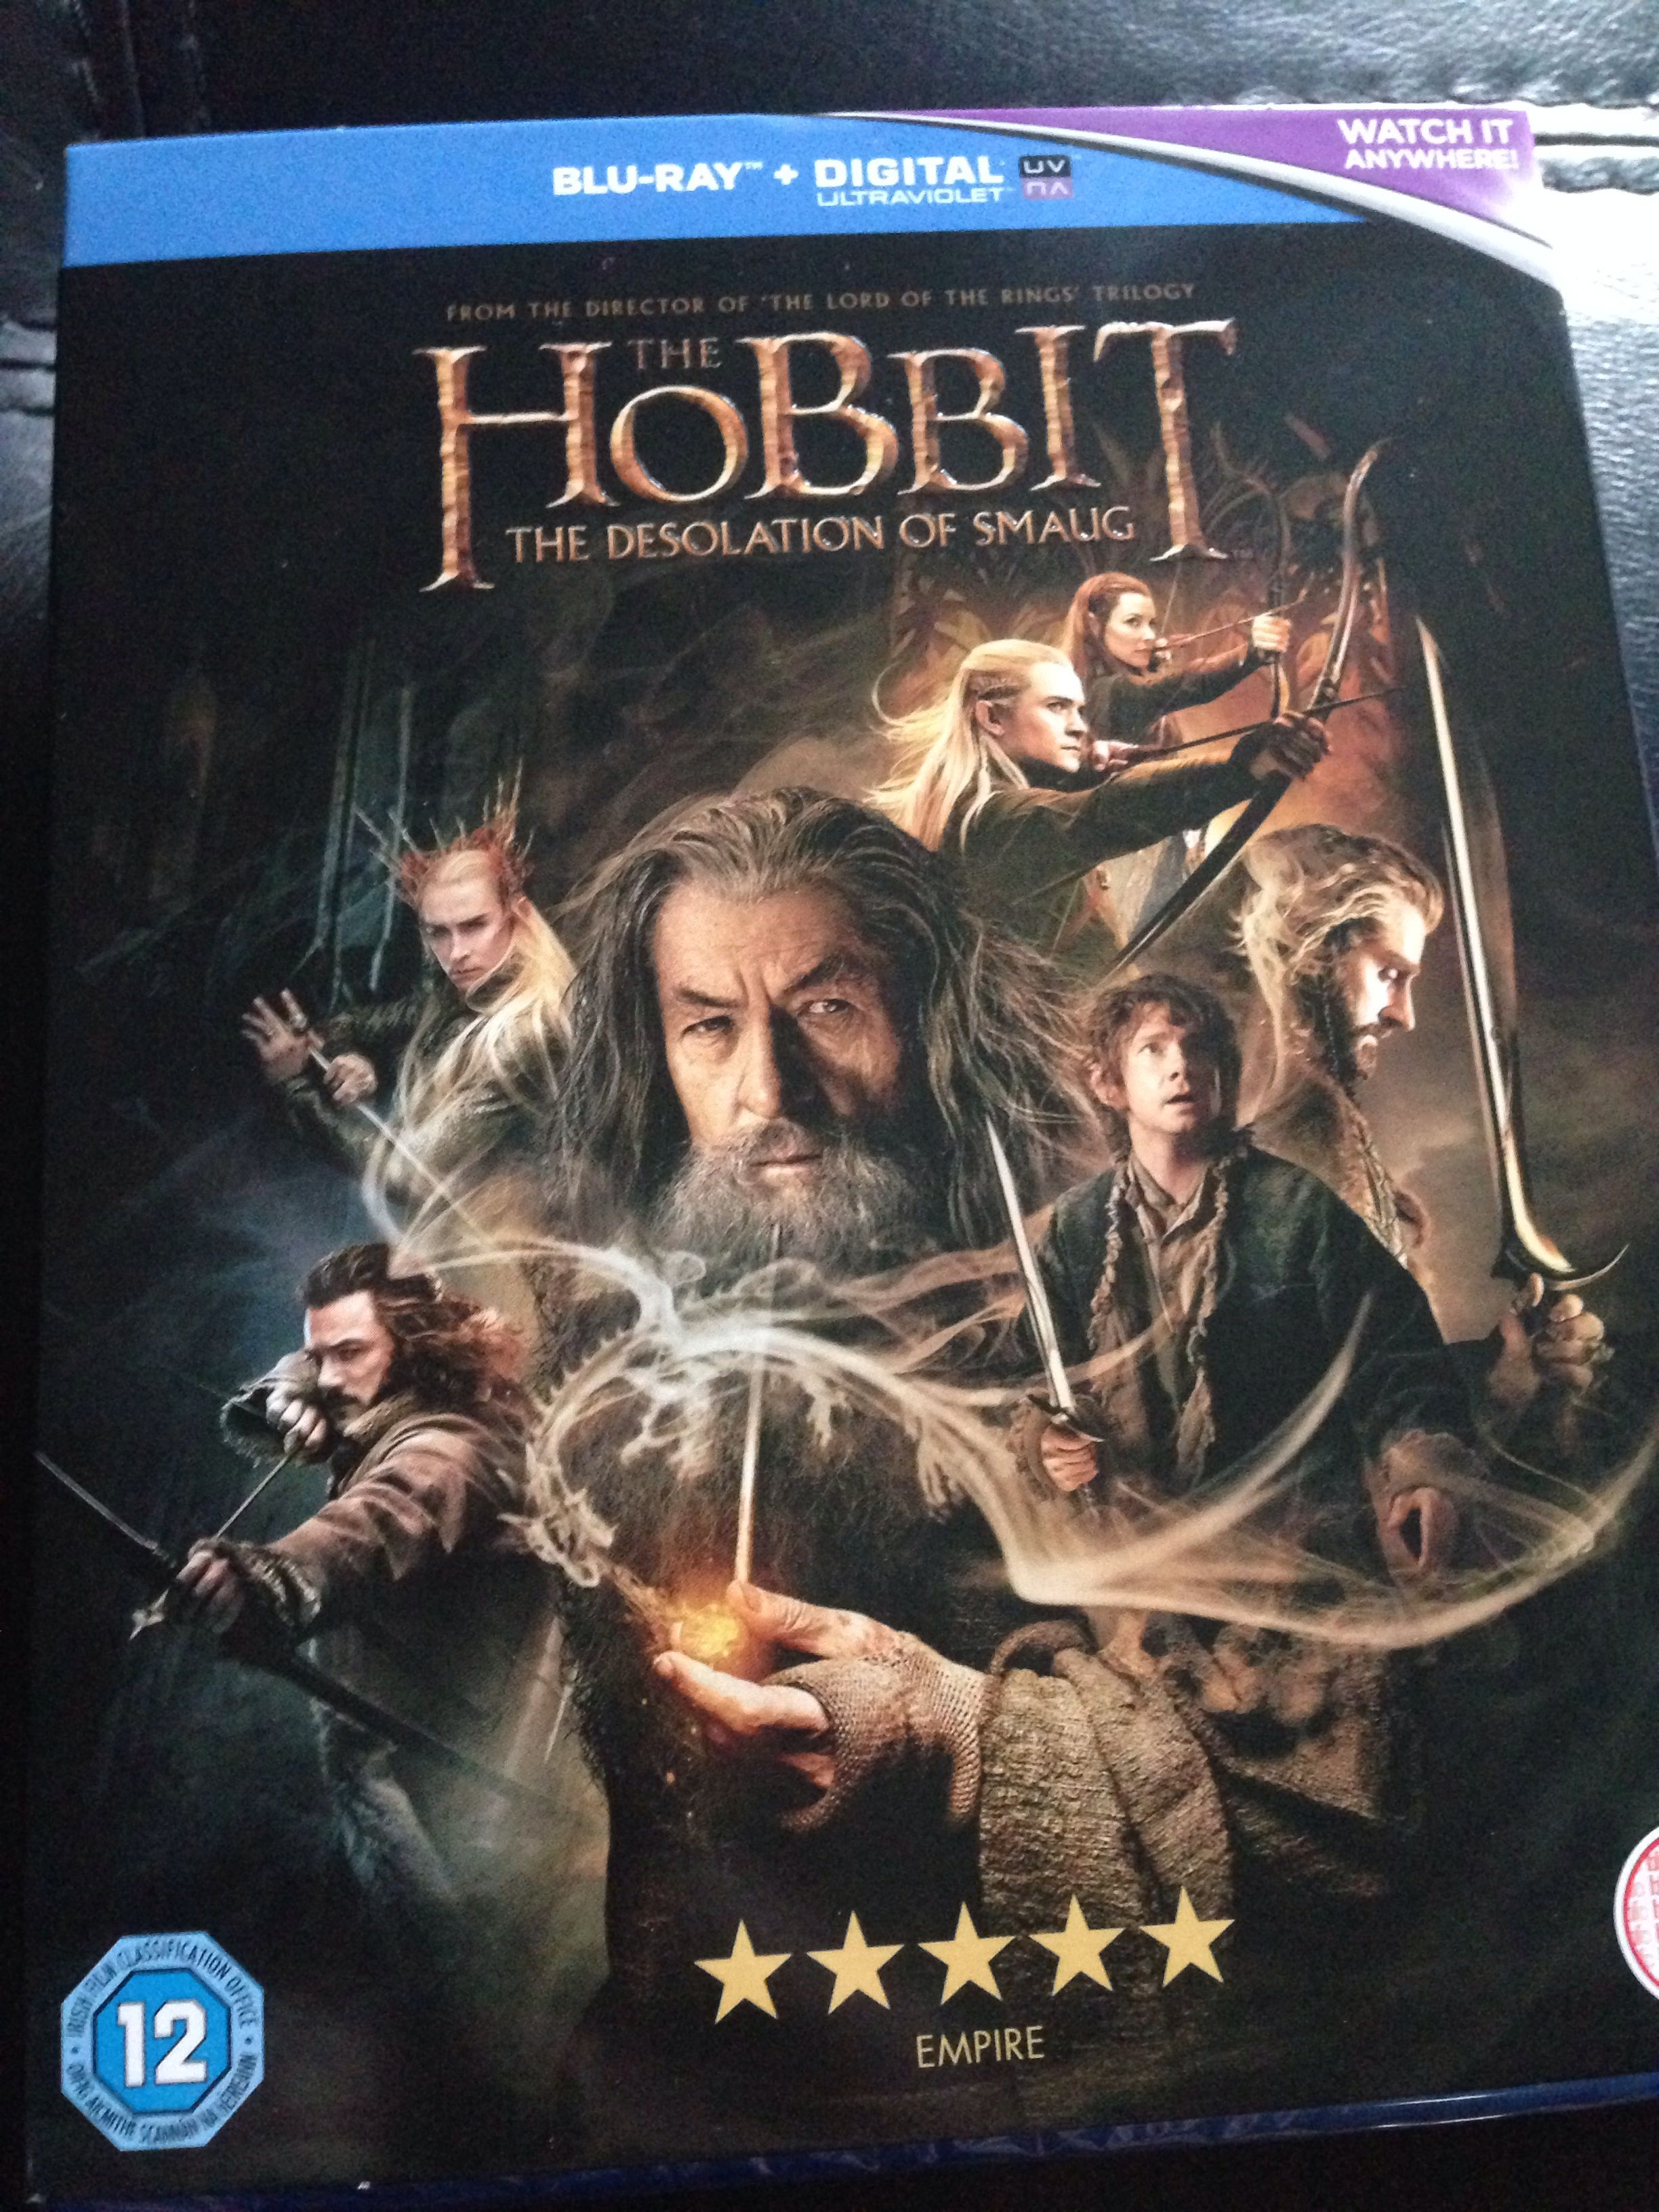 Aww yeah #hobbit #smaug tonight we watch this Beauty